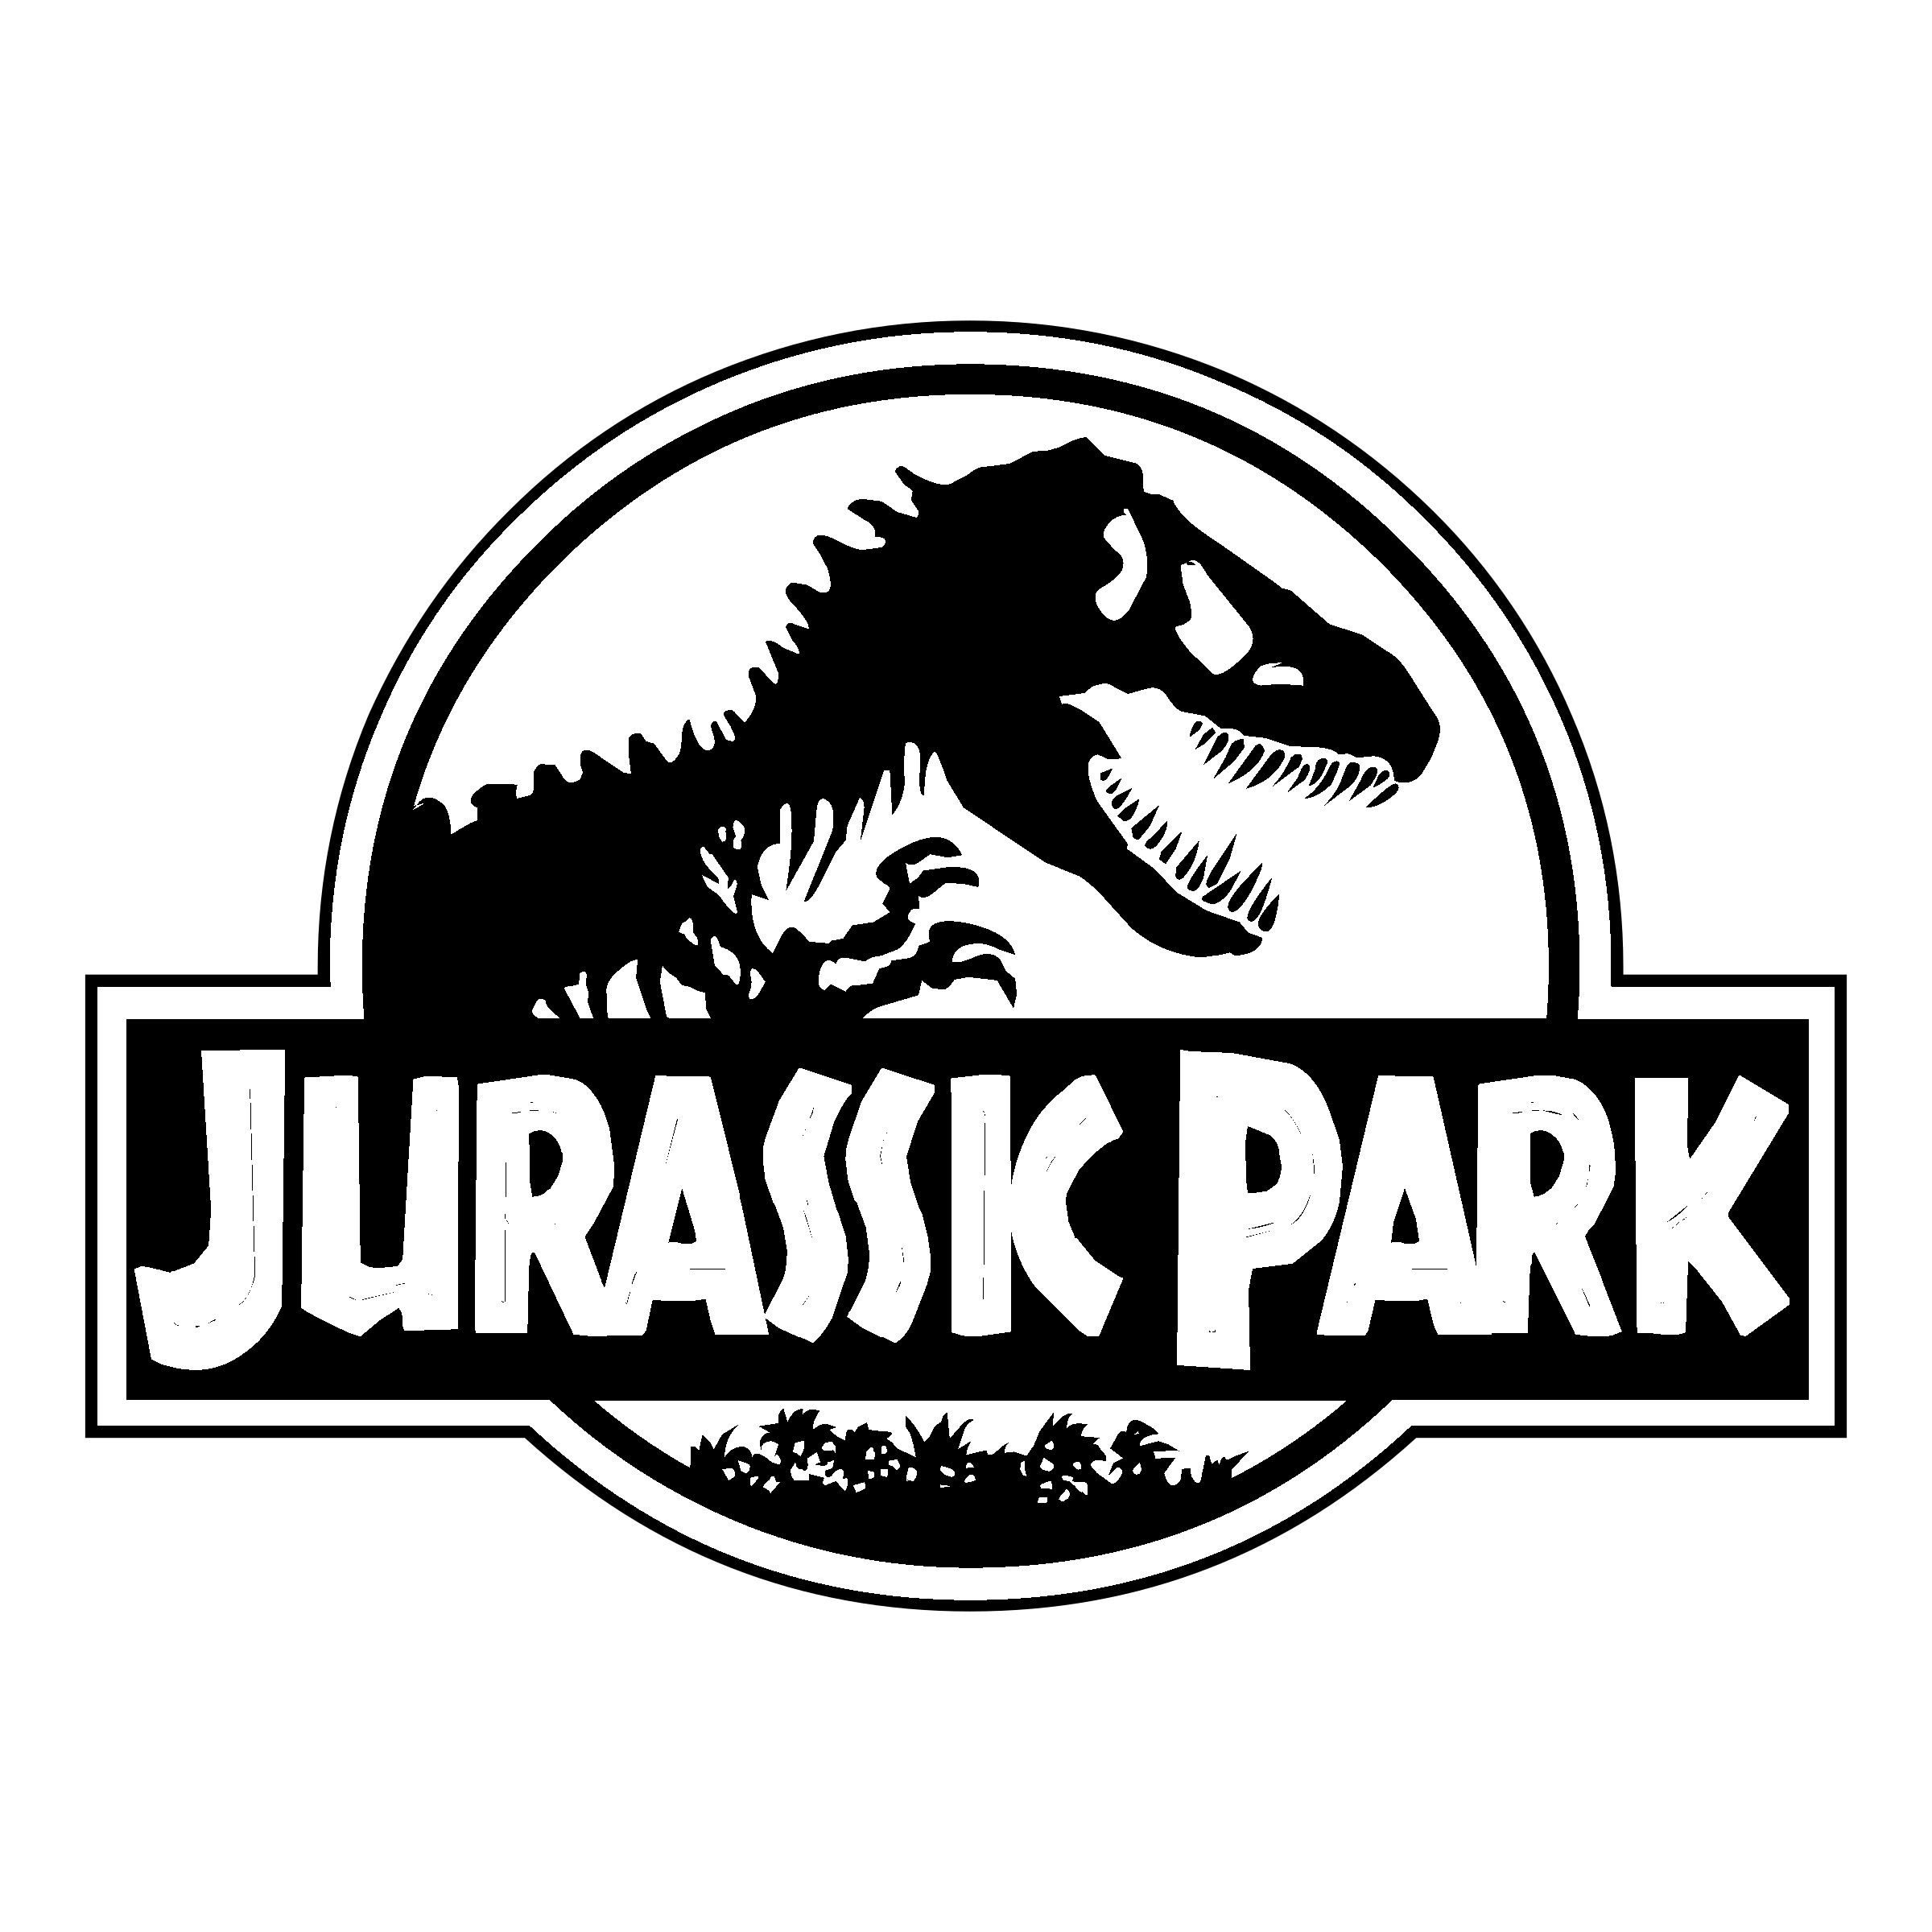 jurassic park logo svg #568, Download drawings